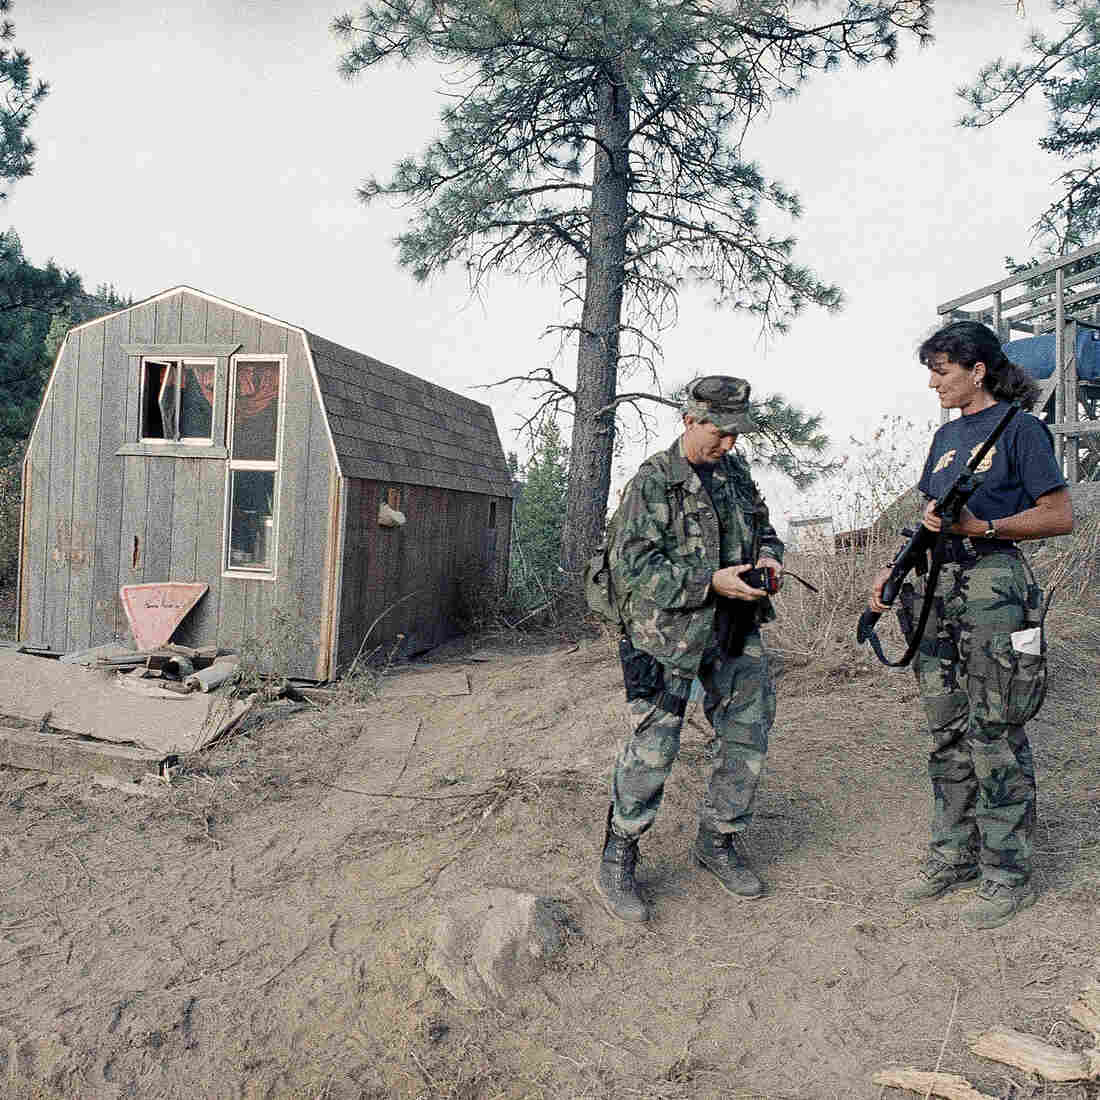 The Federal Response To Oregon Occupation May Have Roots In Ruby Ridge